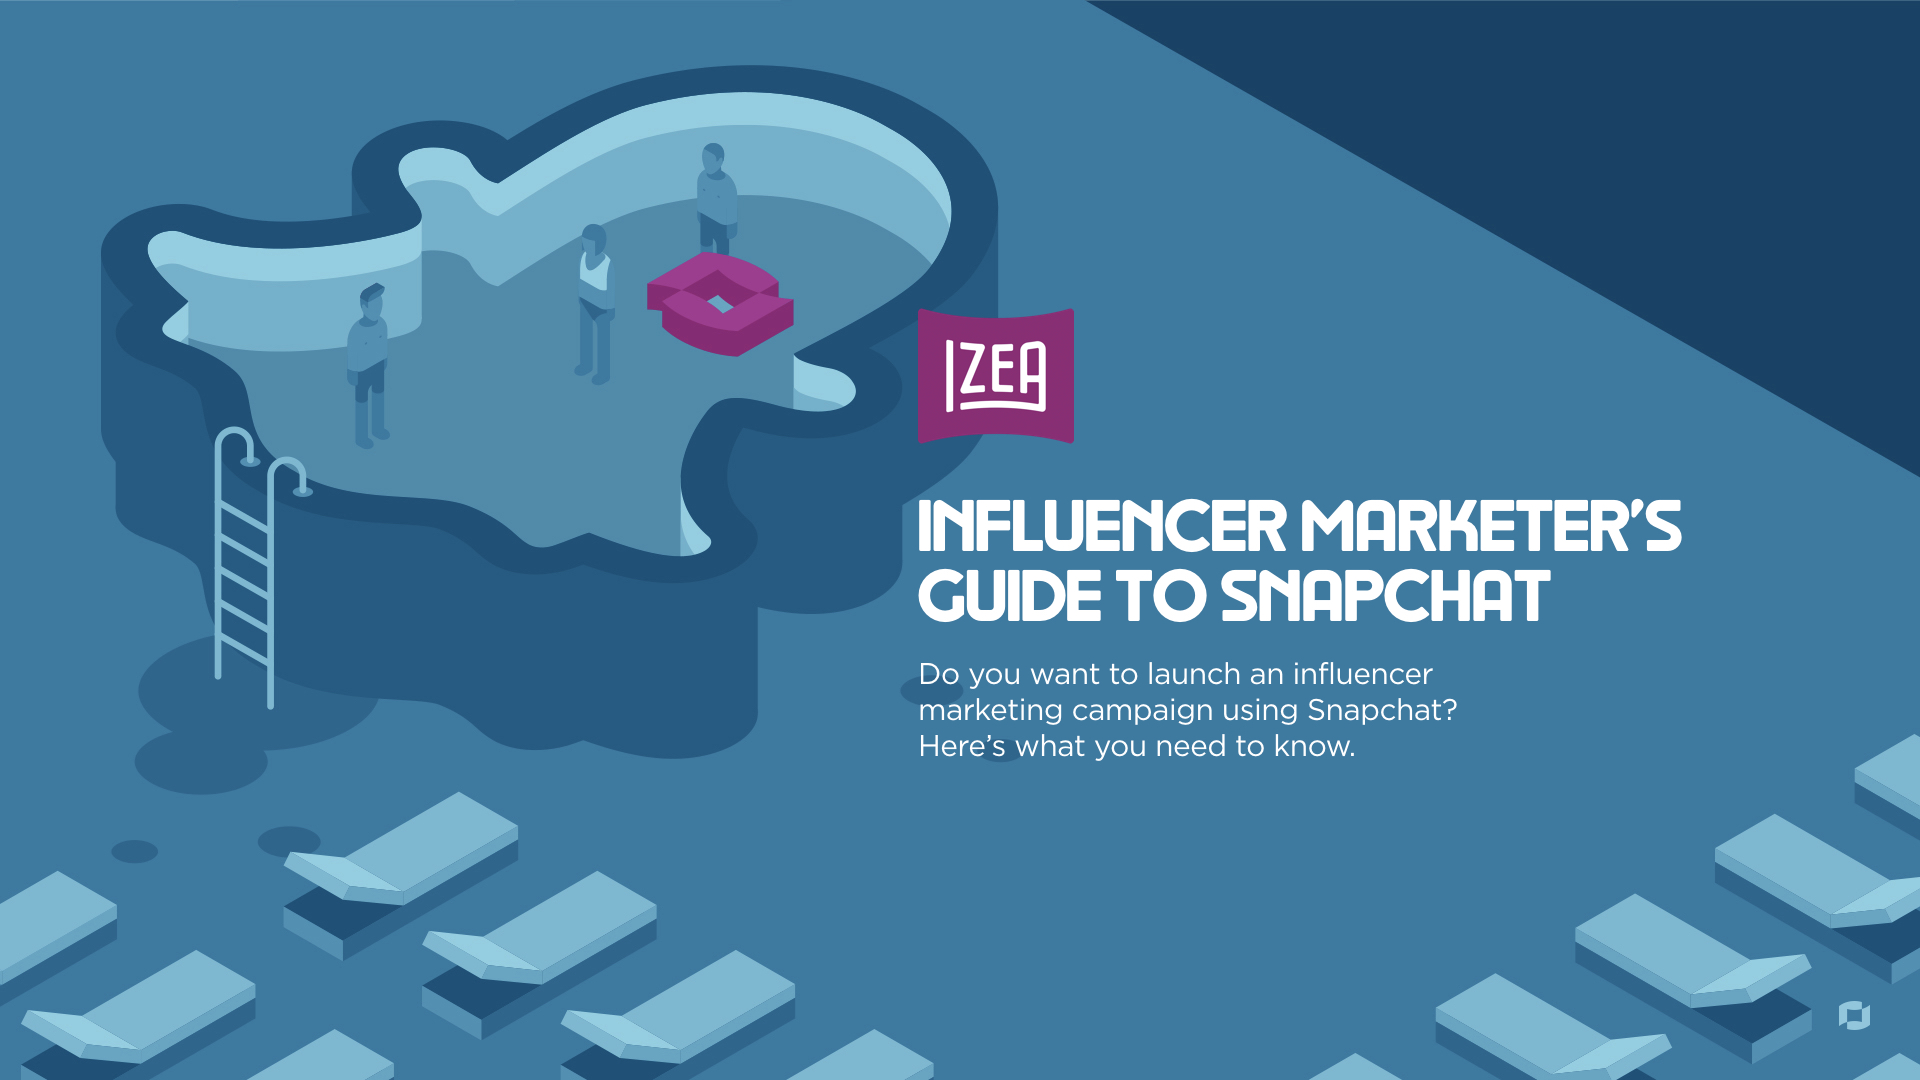 Snapchat Influencer Marketing Ebook Cover